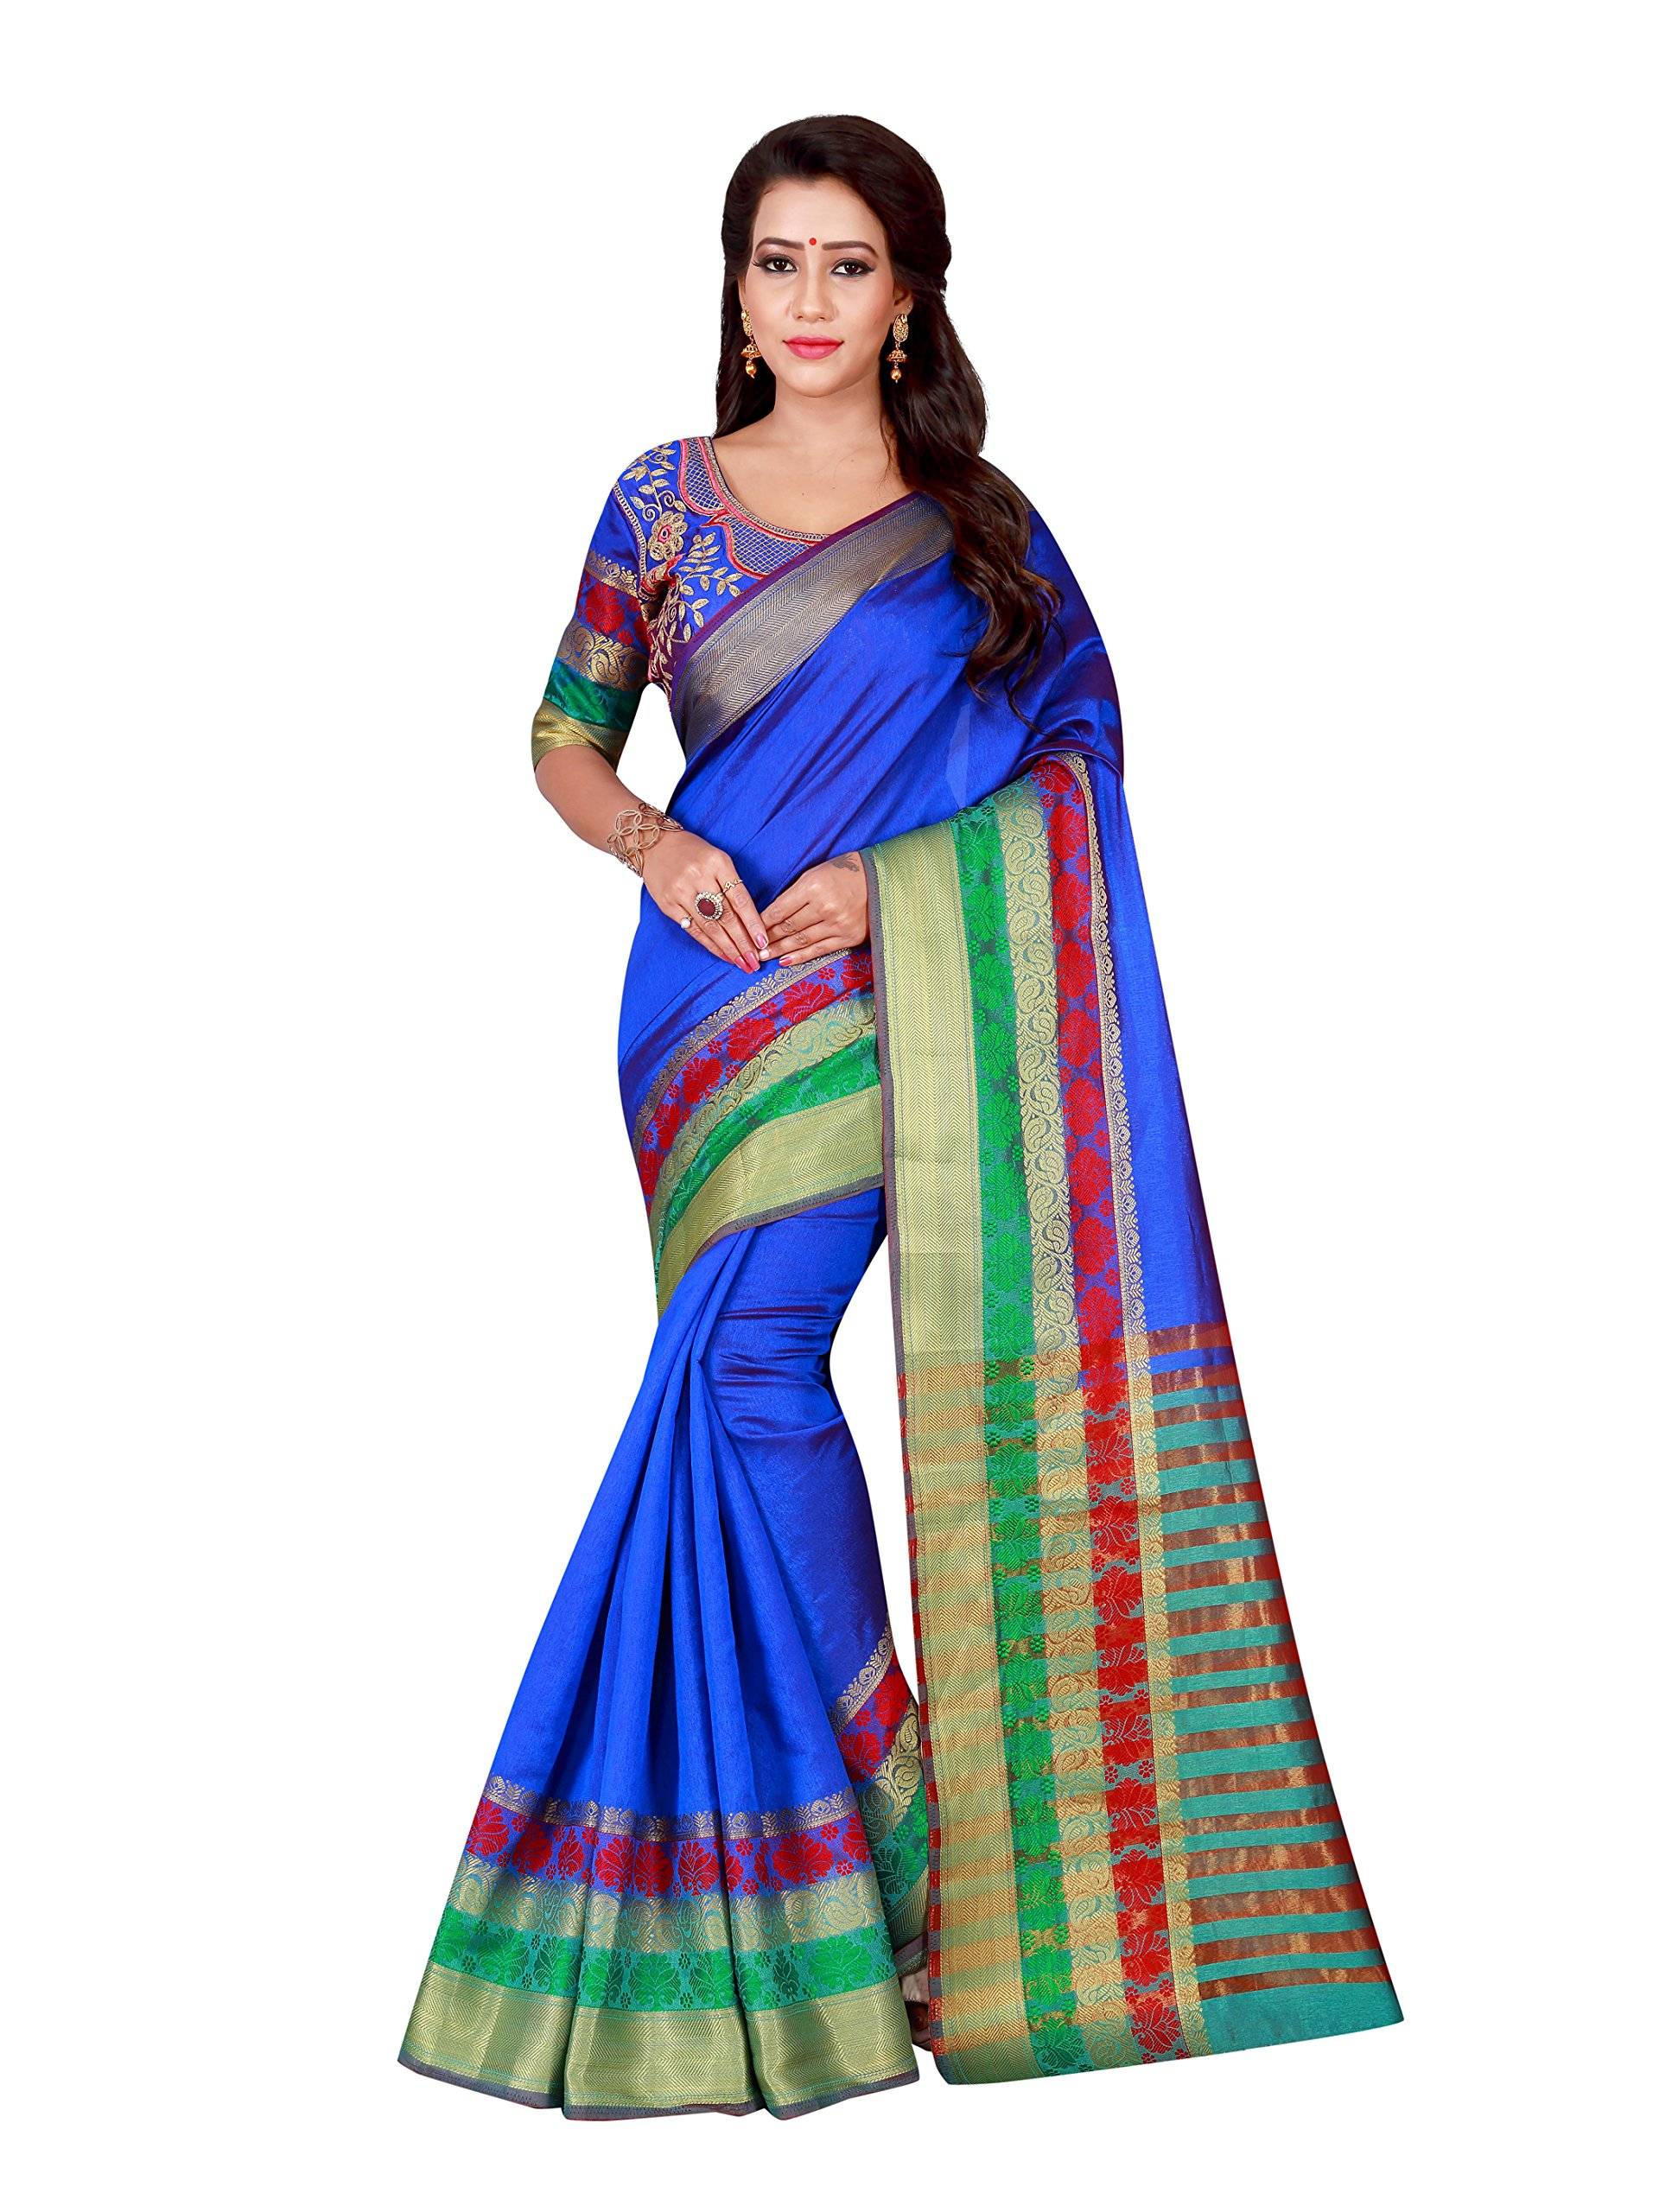 Shonaya Women's Bhaglpuri Art Silk Printed Saree With Unstitched Blouse Piece (Blue1)